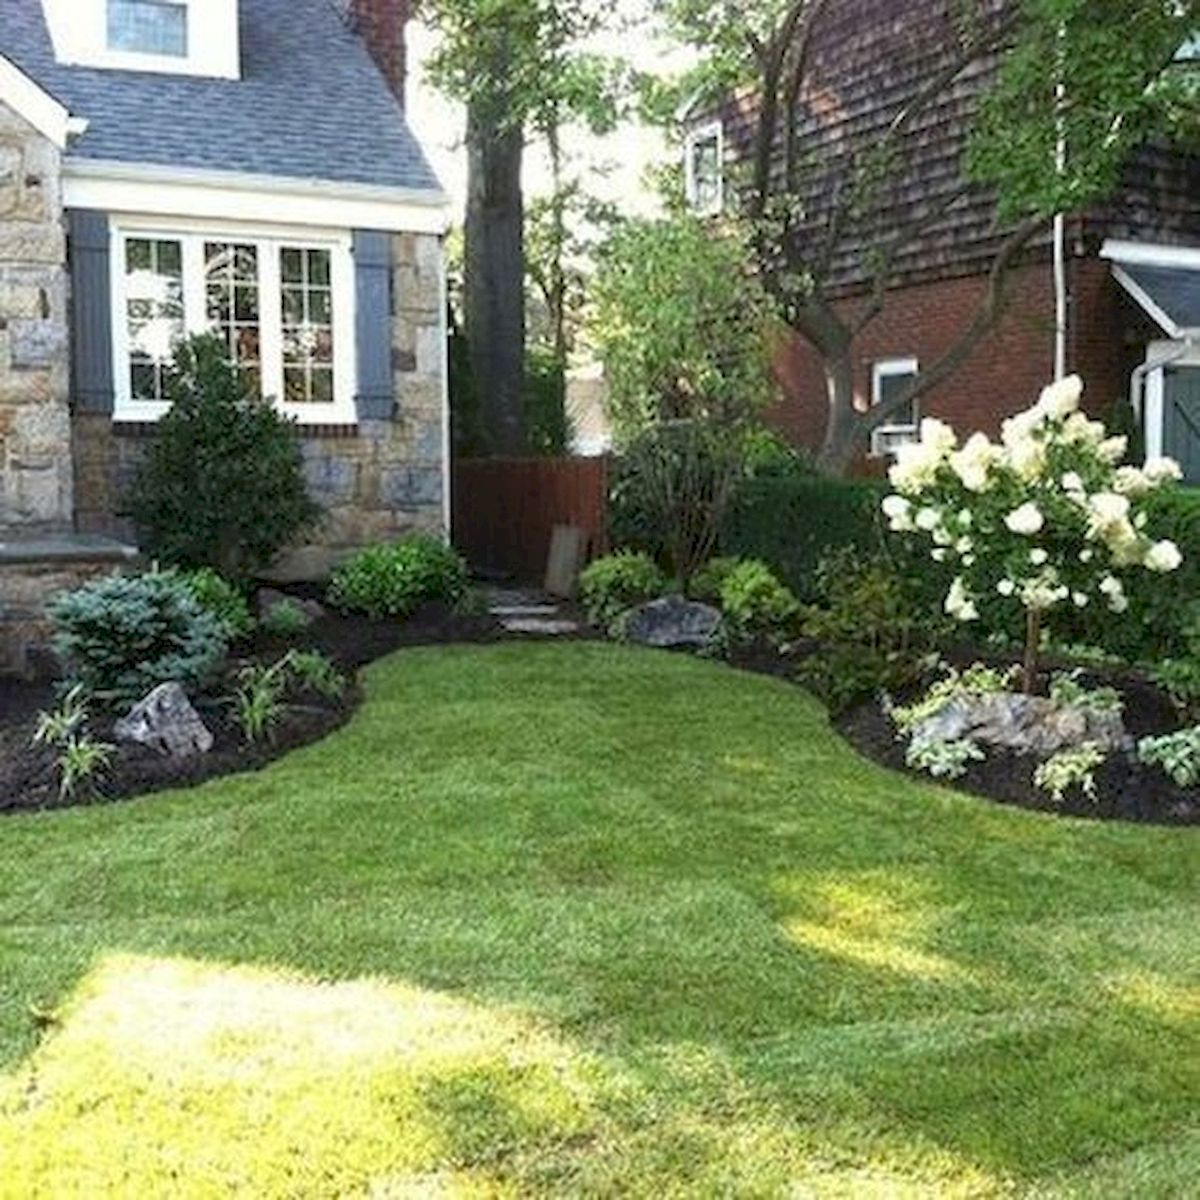 50 Beautiful Side Yard Garden Landscaping Ideas for Your House (13)